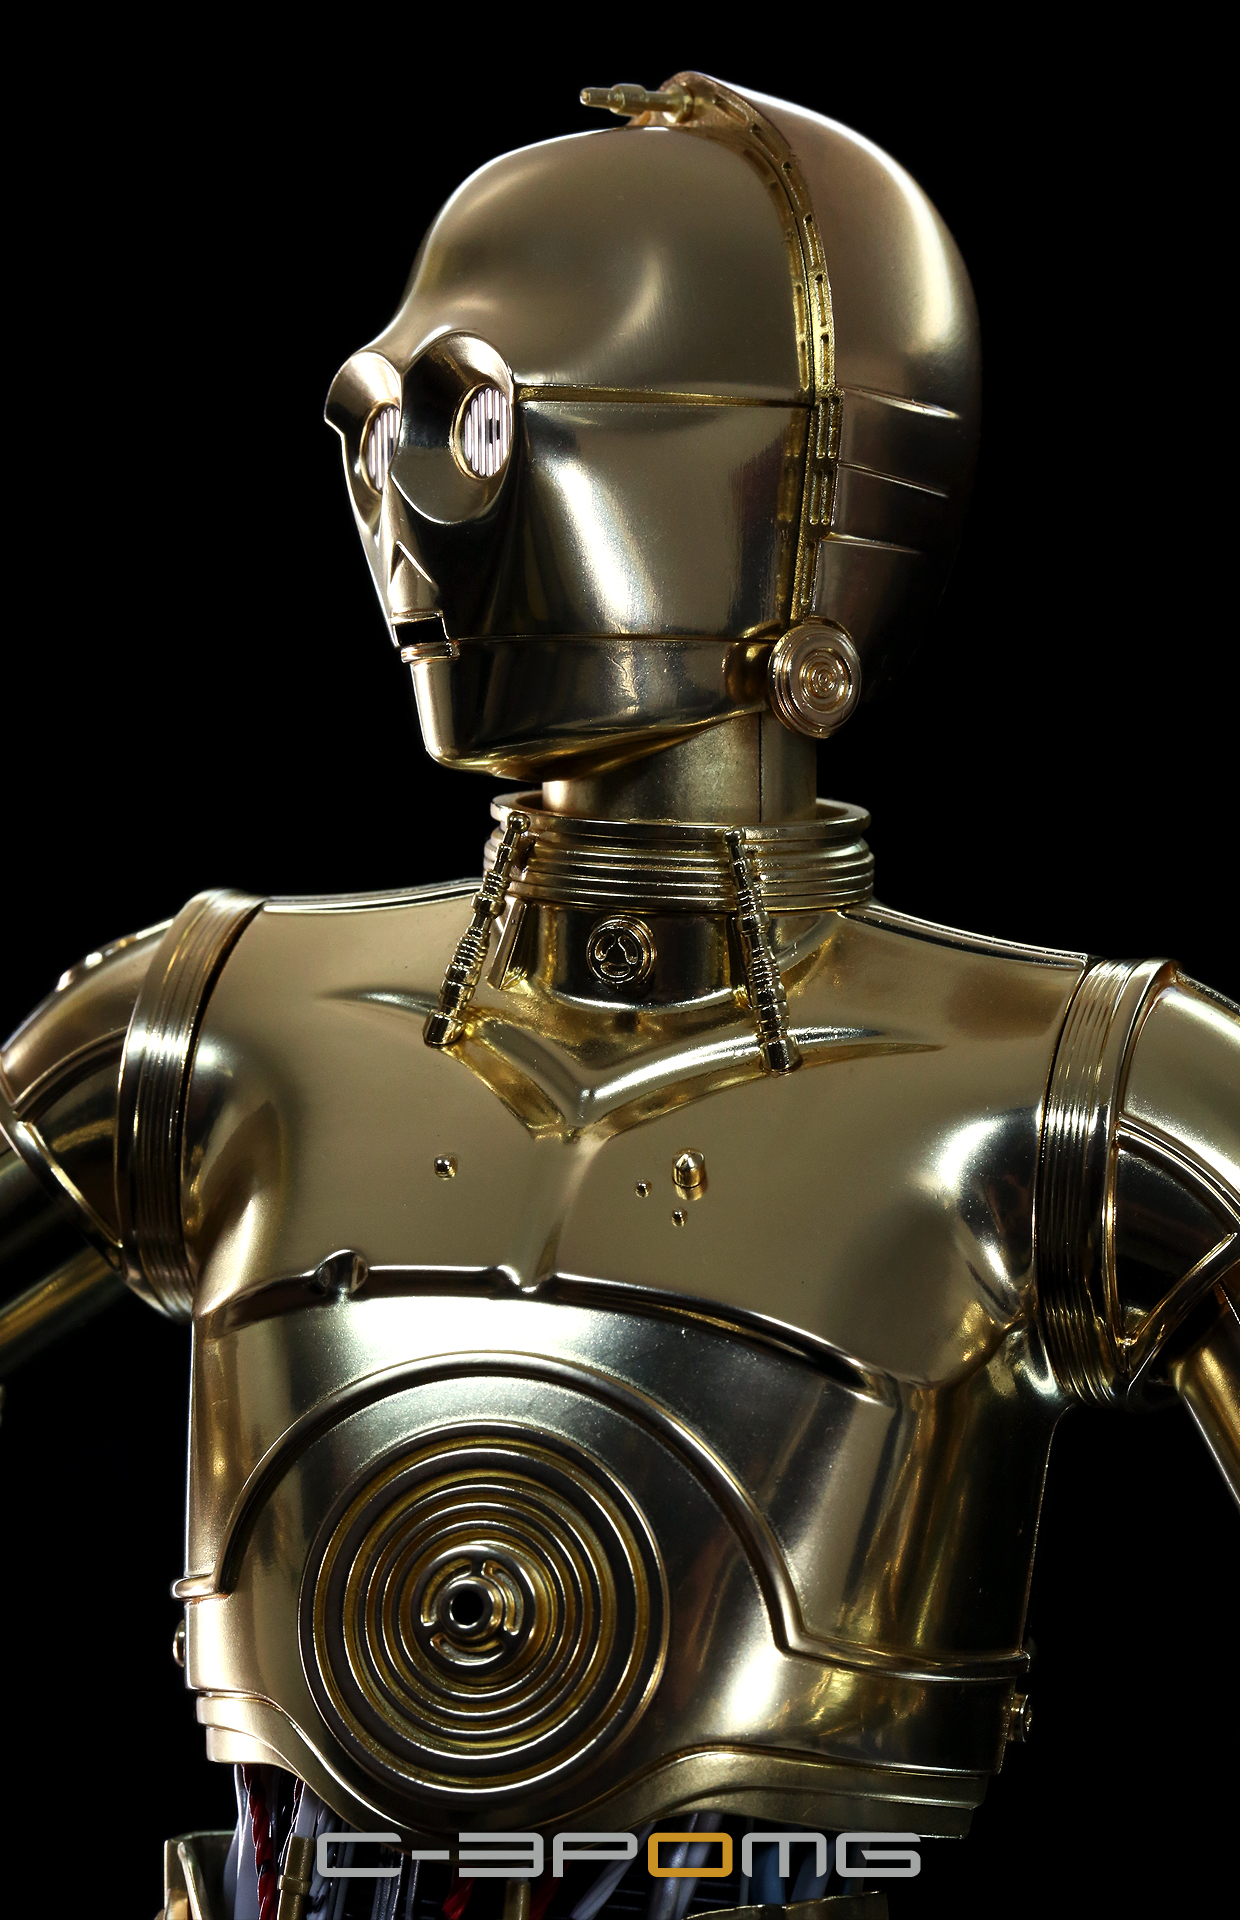 [Bandai] Star Wars: C-3PO - Perfect Model 1/6 scale - LANÇADO!!! - Página 2 C-3PO1128_zpsca4f3584